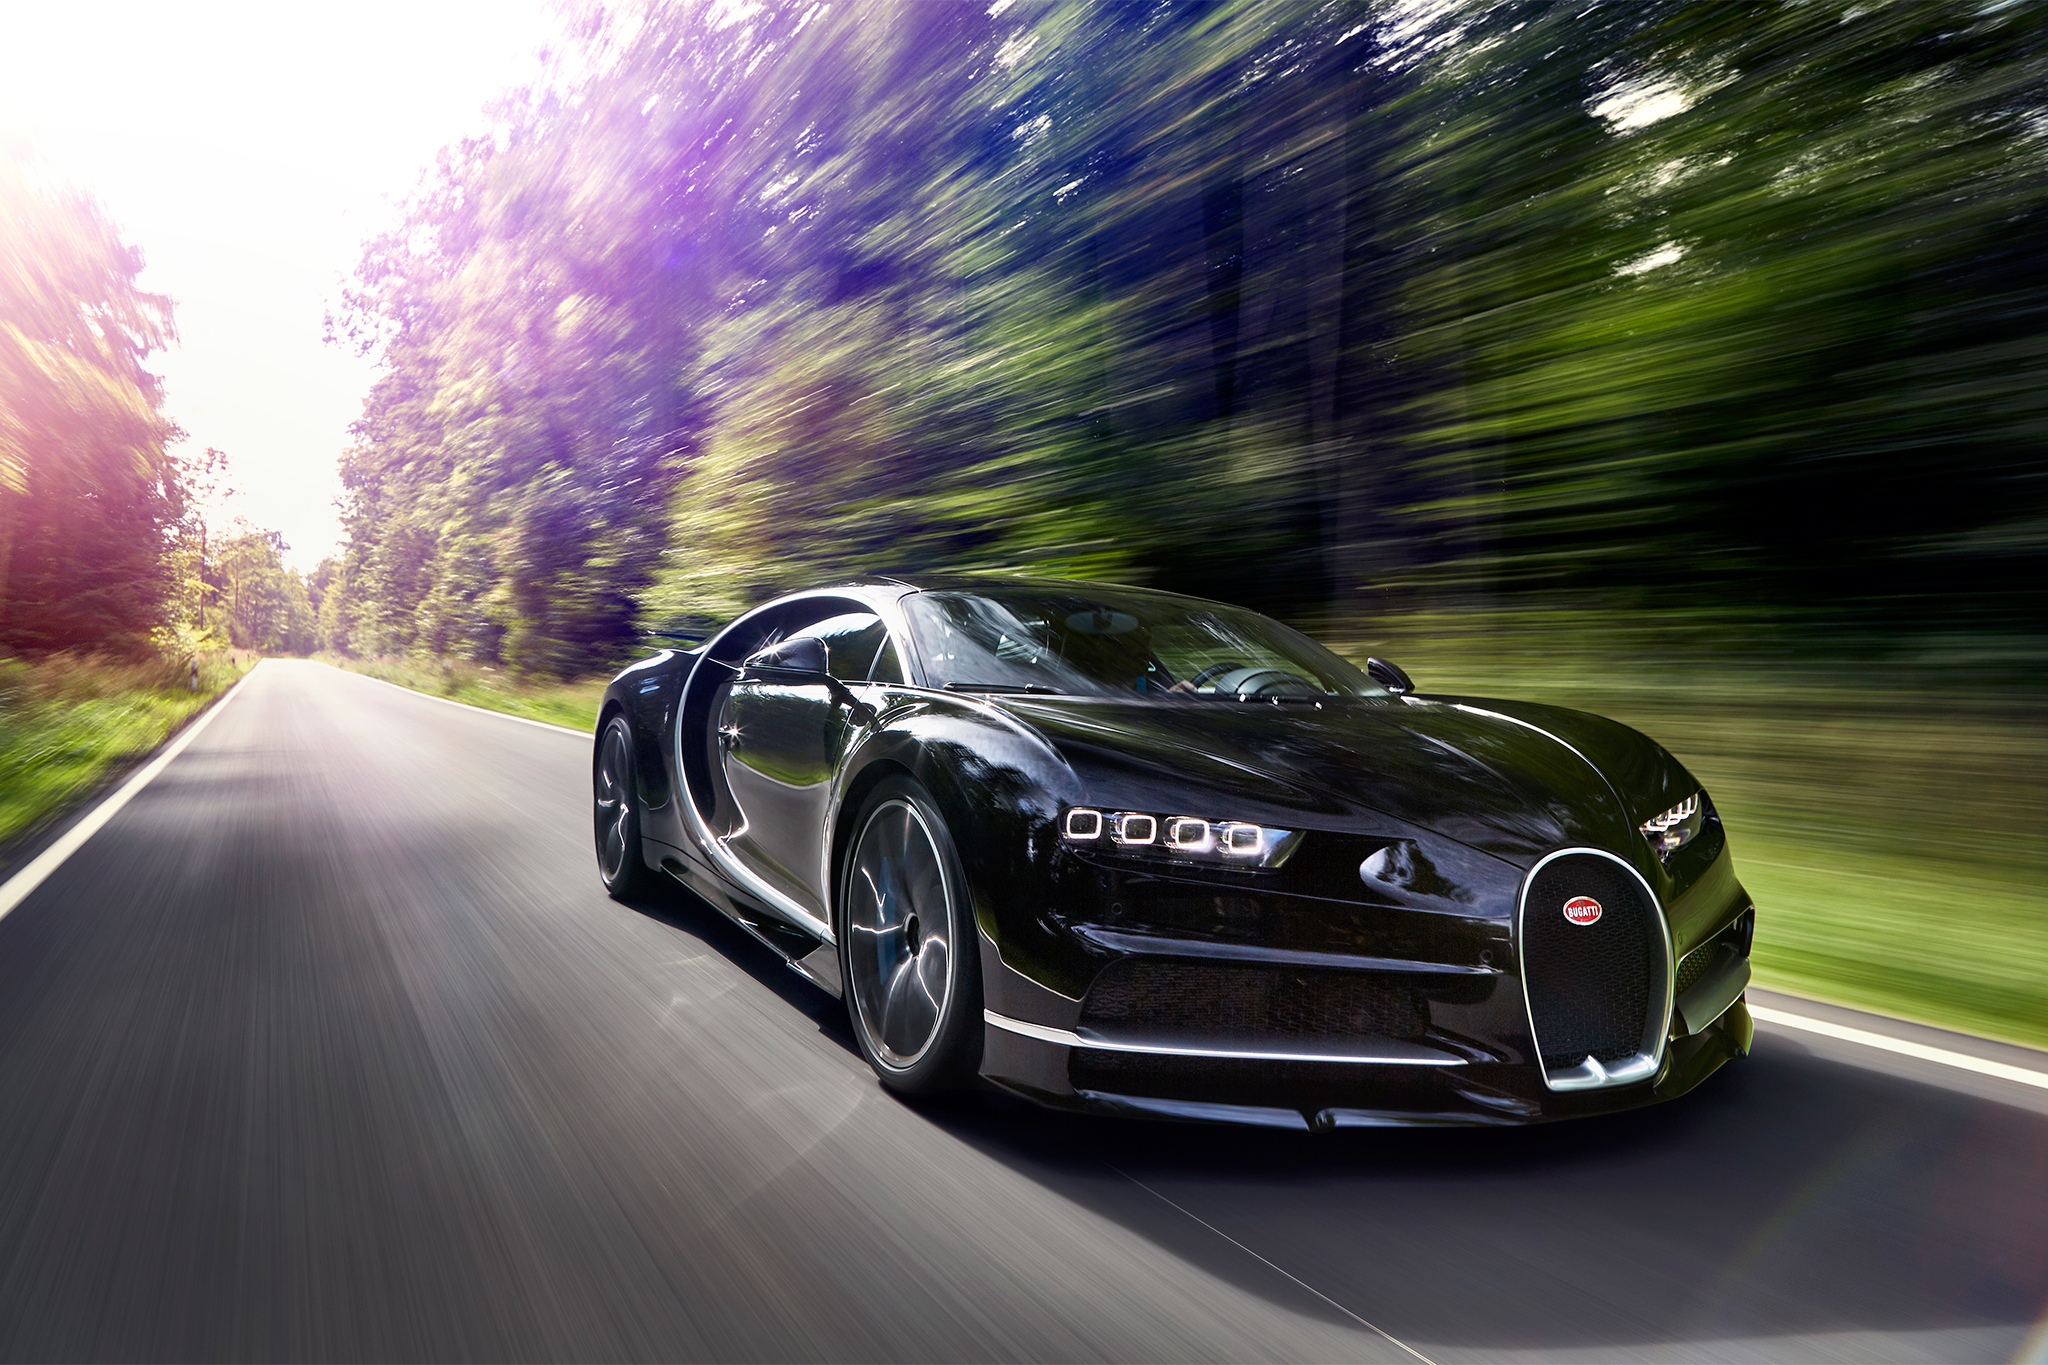 1366x768 2017 Bugatti Chiron In Motion 1366x768 Resolution Hd 4k